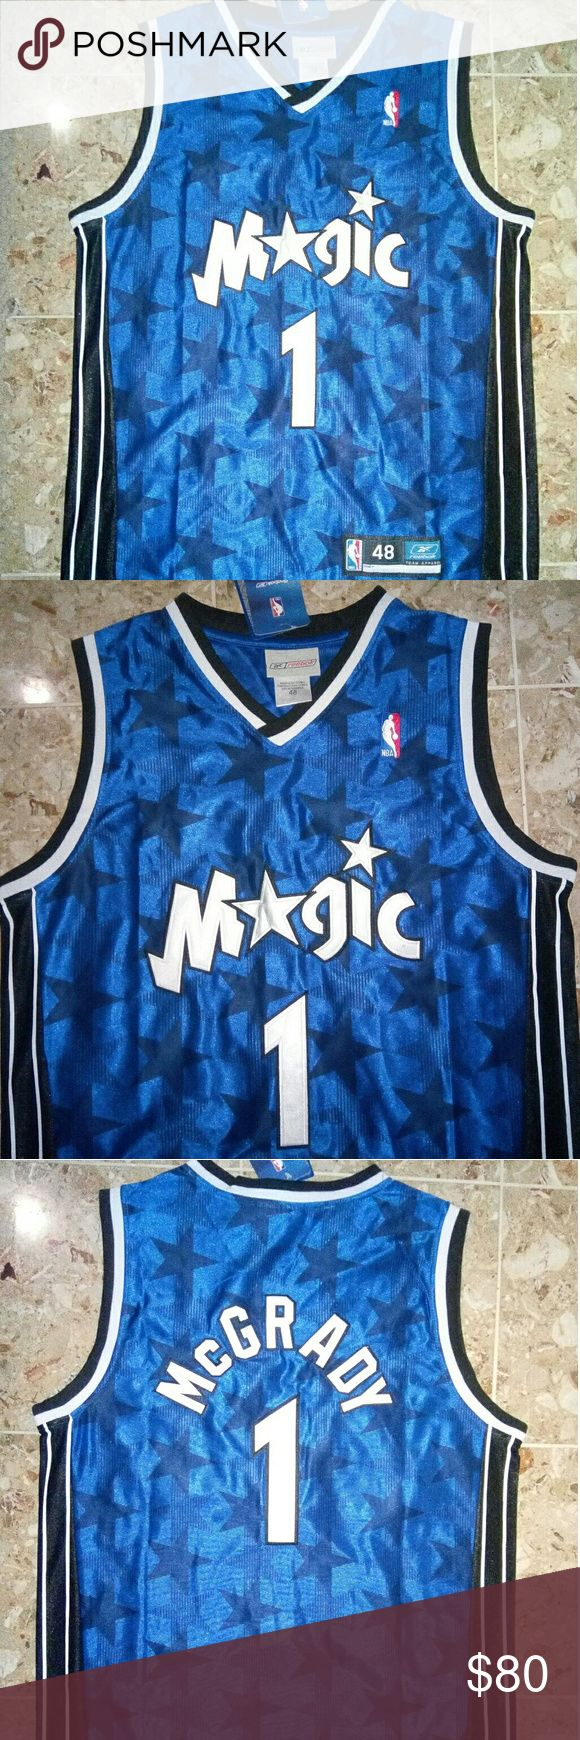 NBA Orlando Magic Tracy McGrady Throwback Jersey I am selling a brand new Men's NBA Orlando Magic Tracy McGrady throwback jersey. This jersey is a fantastic jersey that looks even more fantastic in person. It is in a size Men's Medium. Please serious interests only. Reebok Shirts Tank Tops